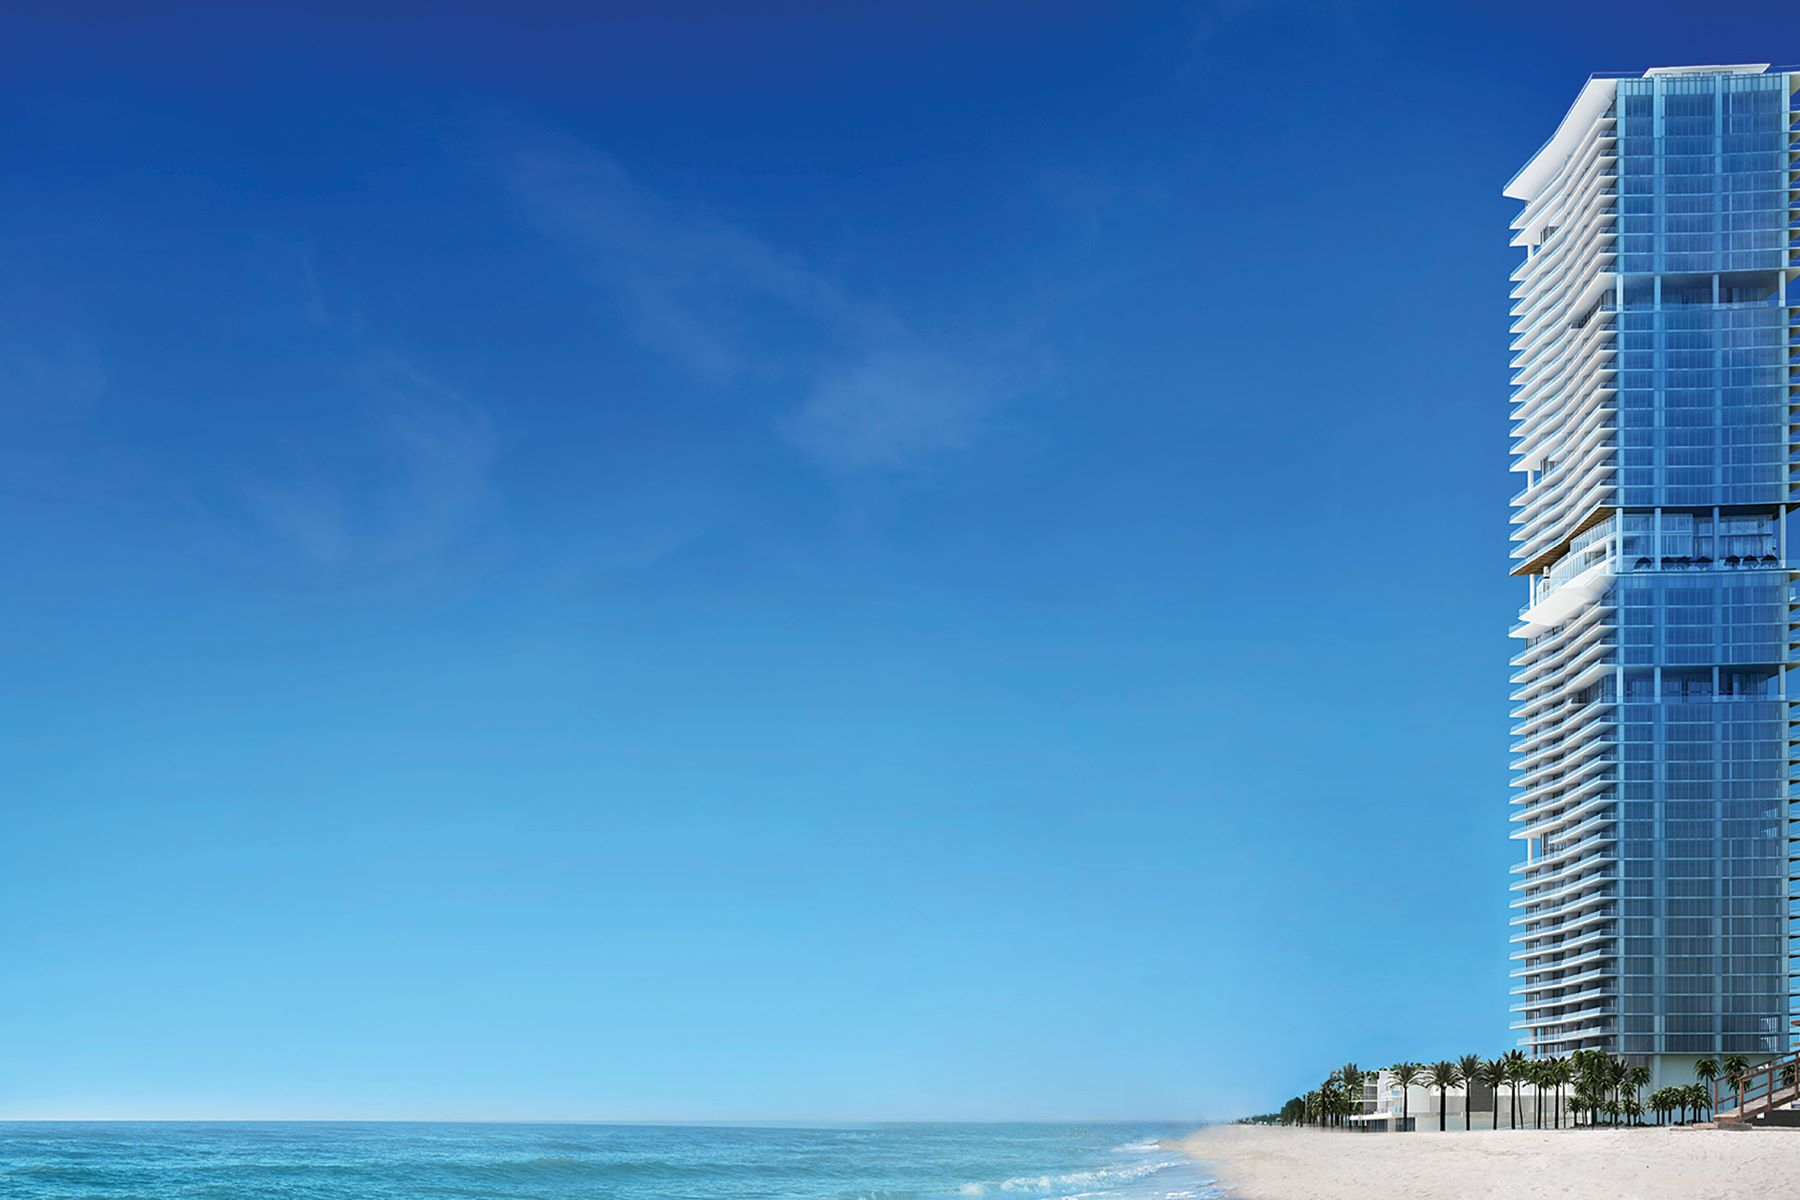 condominiums for Active at 18501 Collins Ave 1604 Sunny Isles Beach, Florida 33160 United States